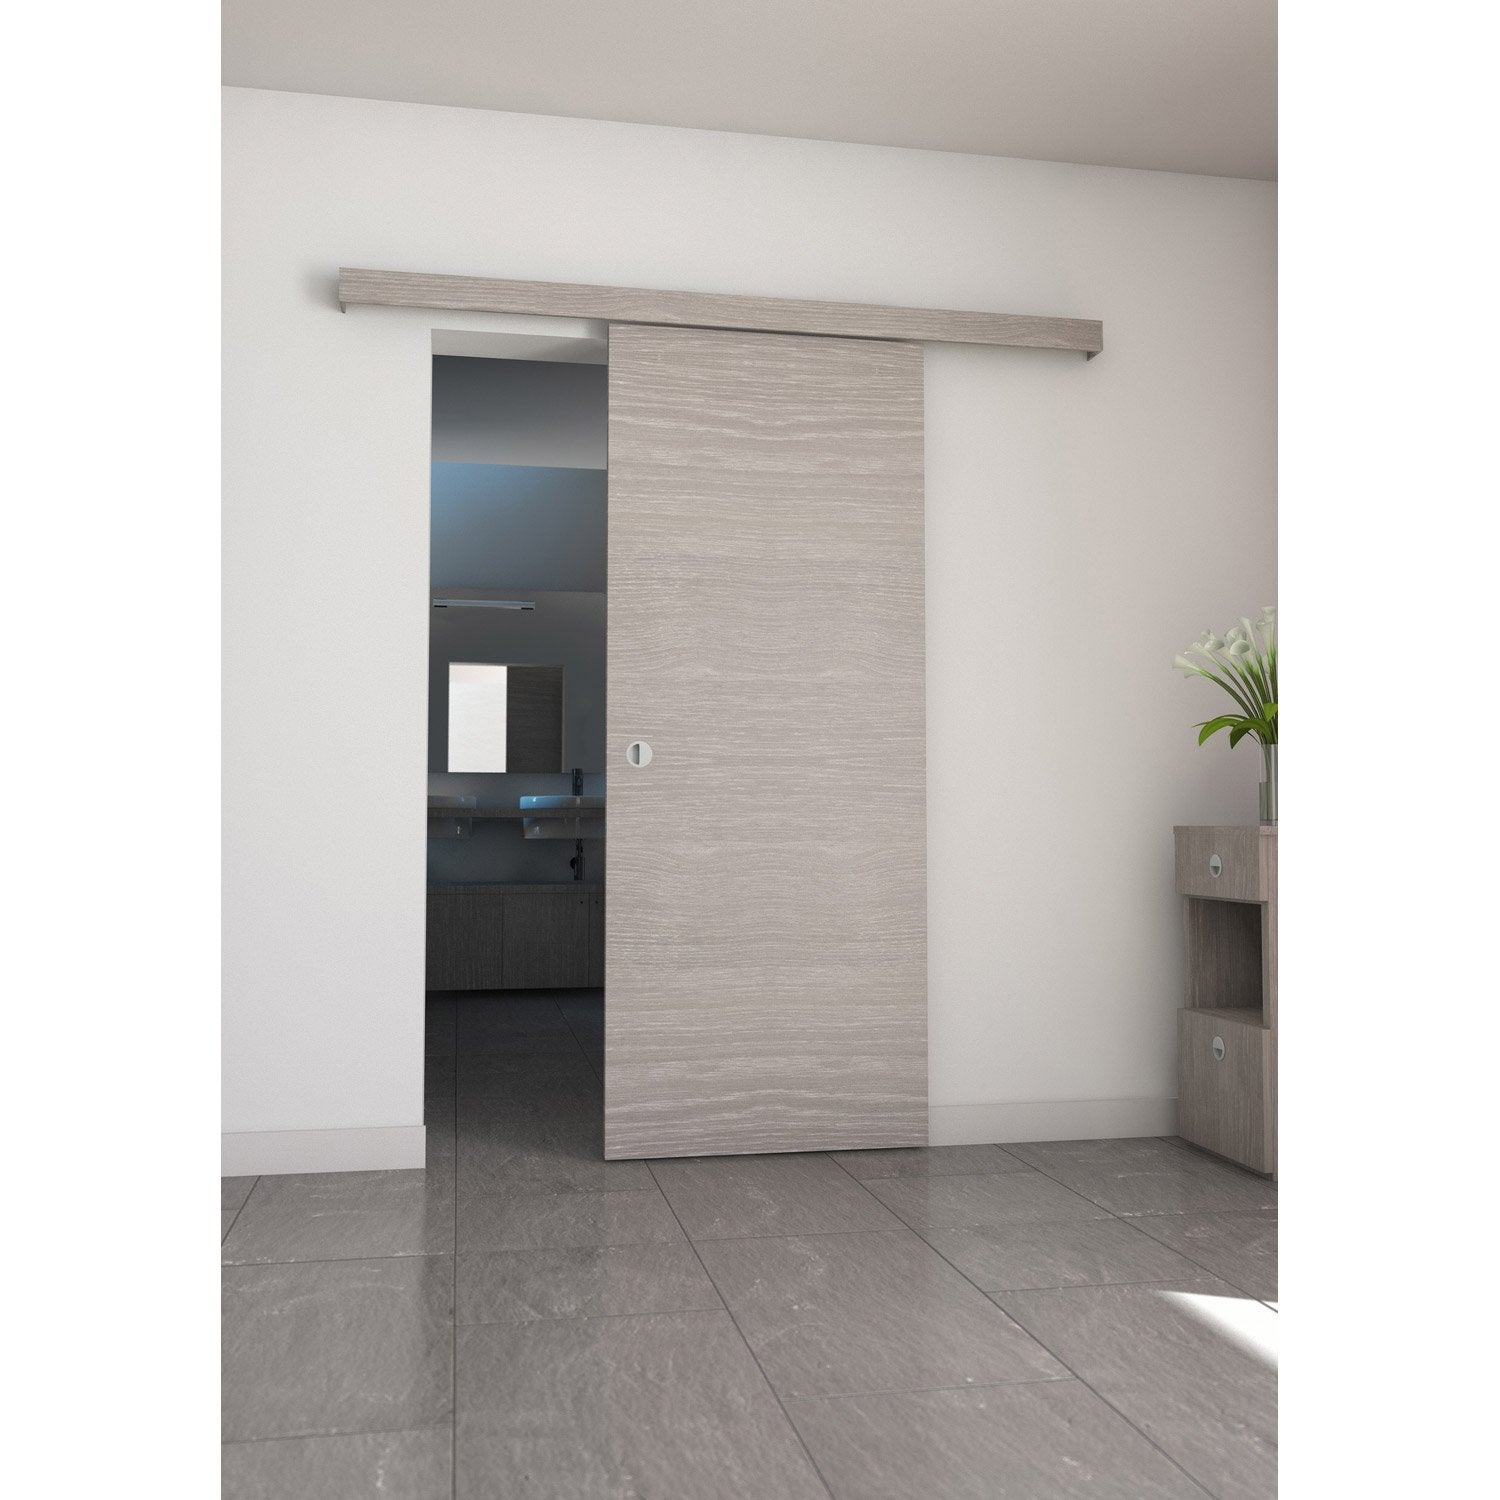 Ensemble porte coulissante coulicool mdf rev tu aluminium leroy merlin - Plaque mdf leroy merlin ...